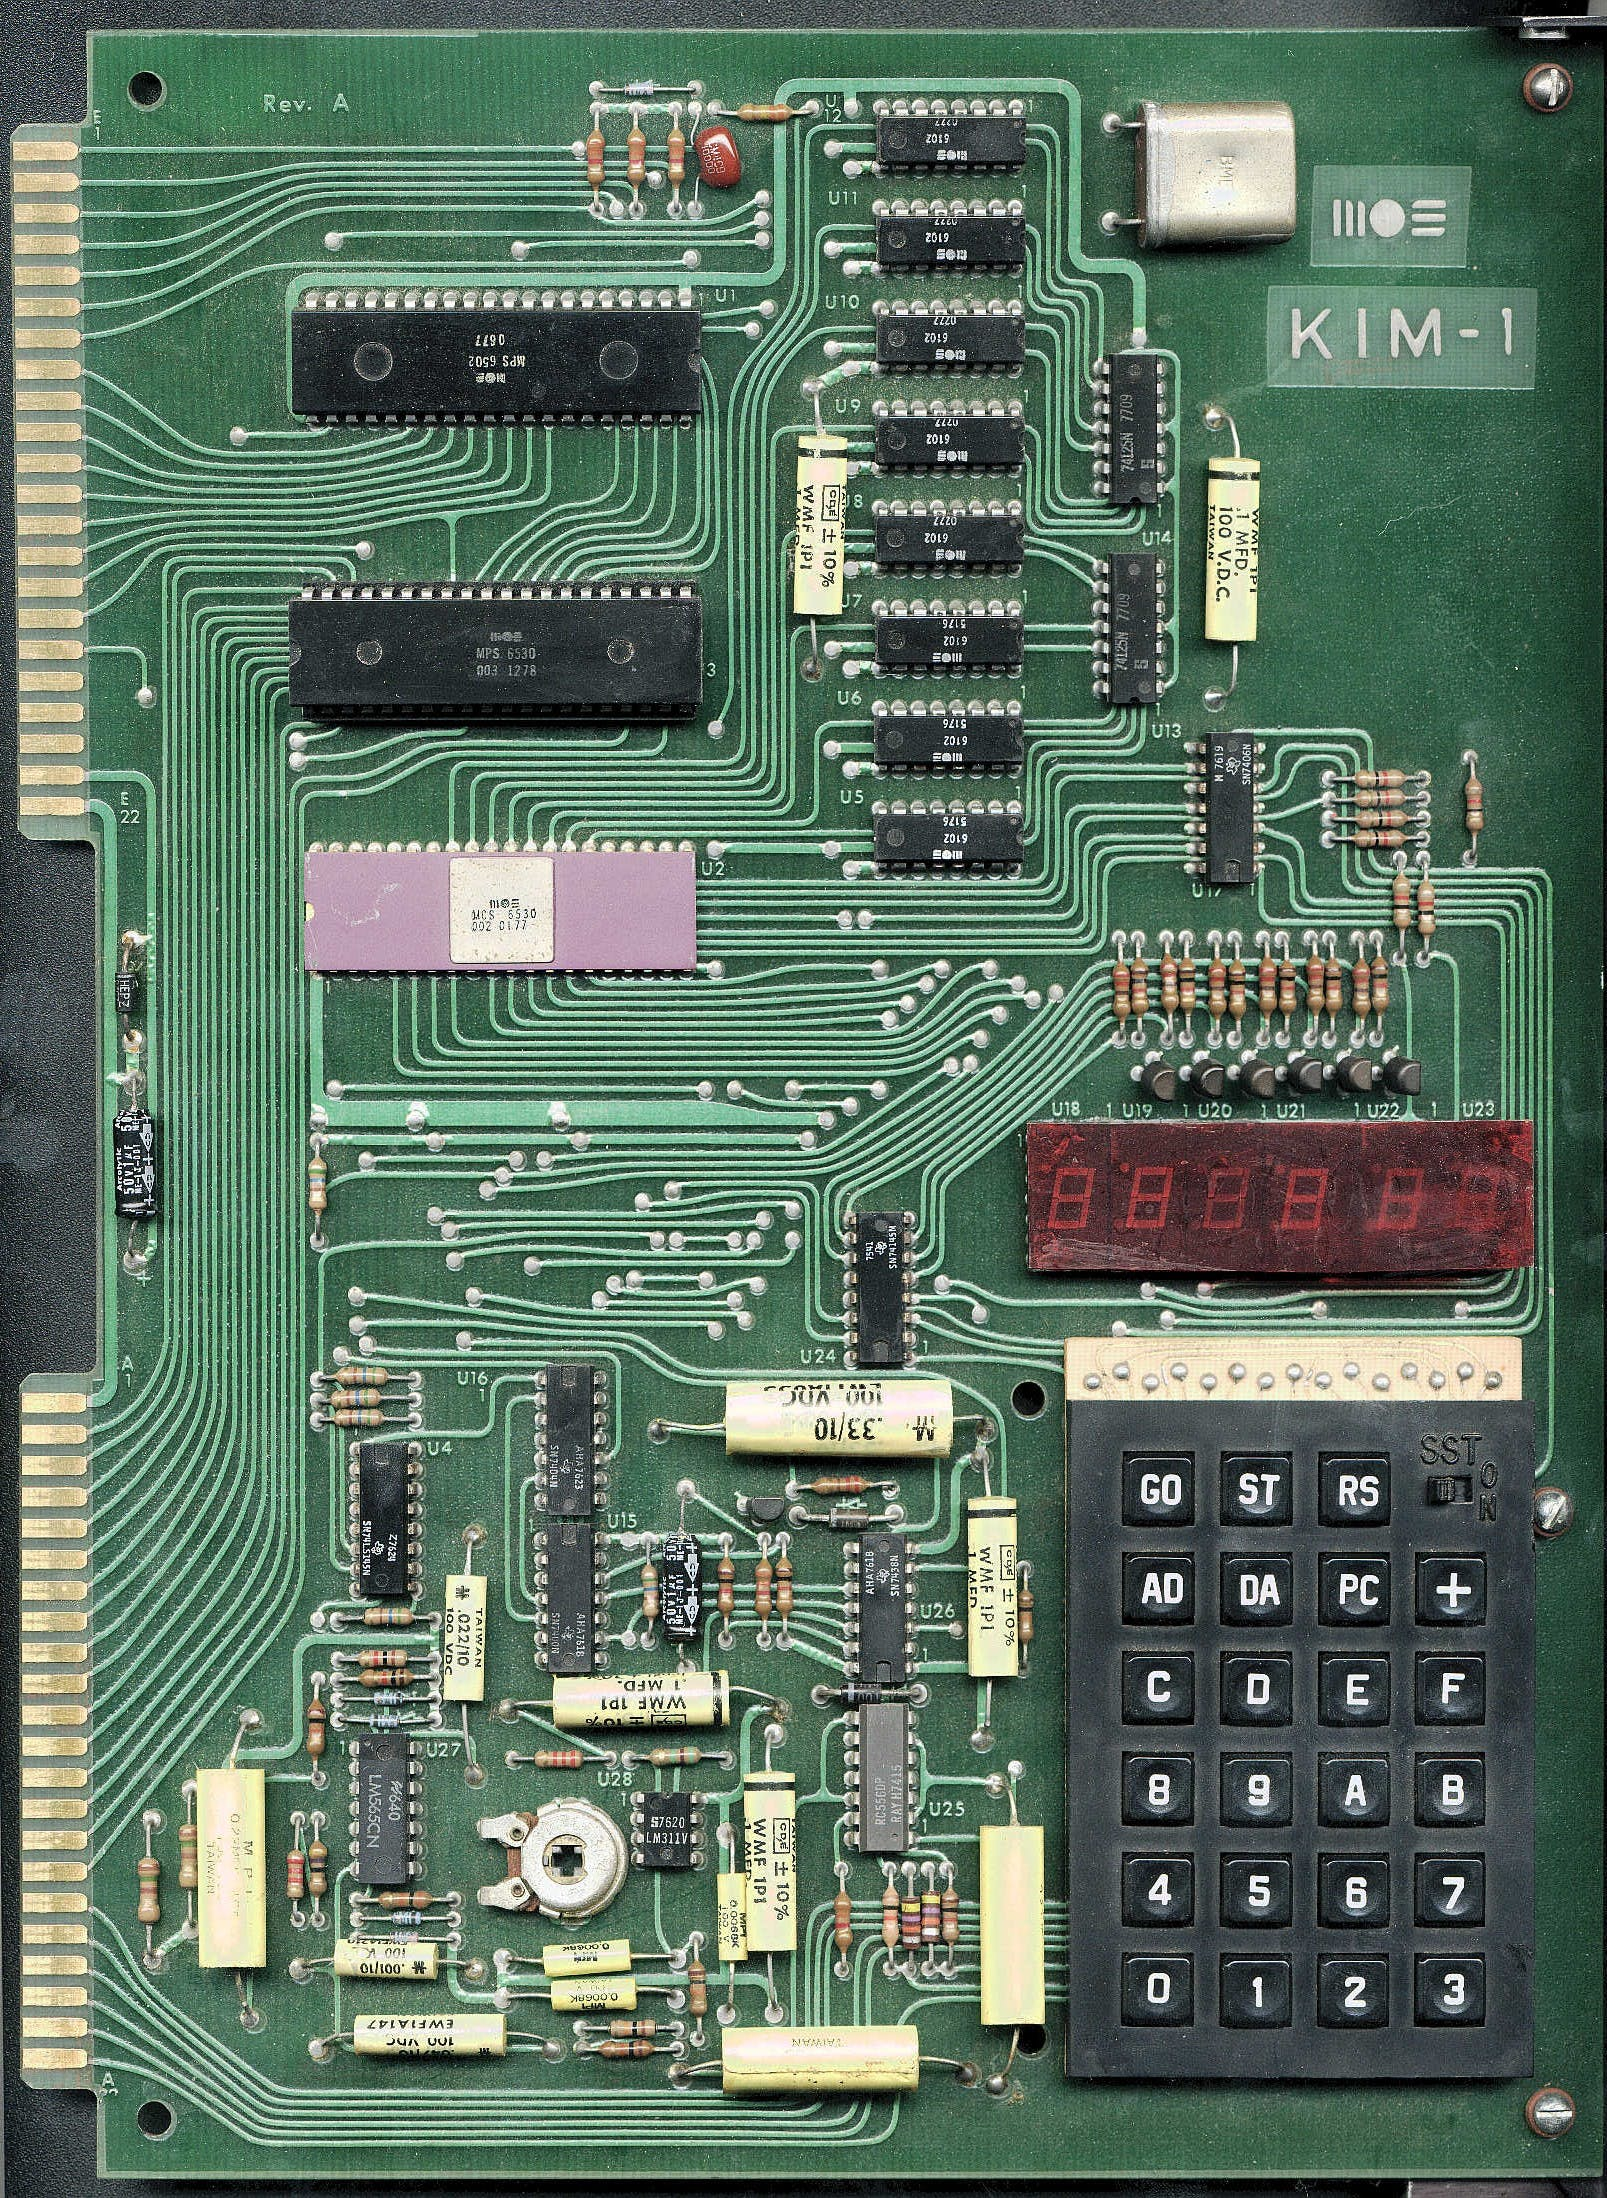 The Real Thing from 1976: KIM-1 Single Board Computer